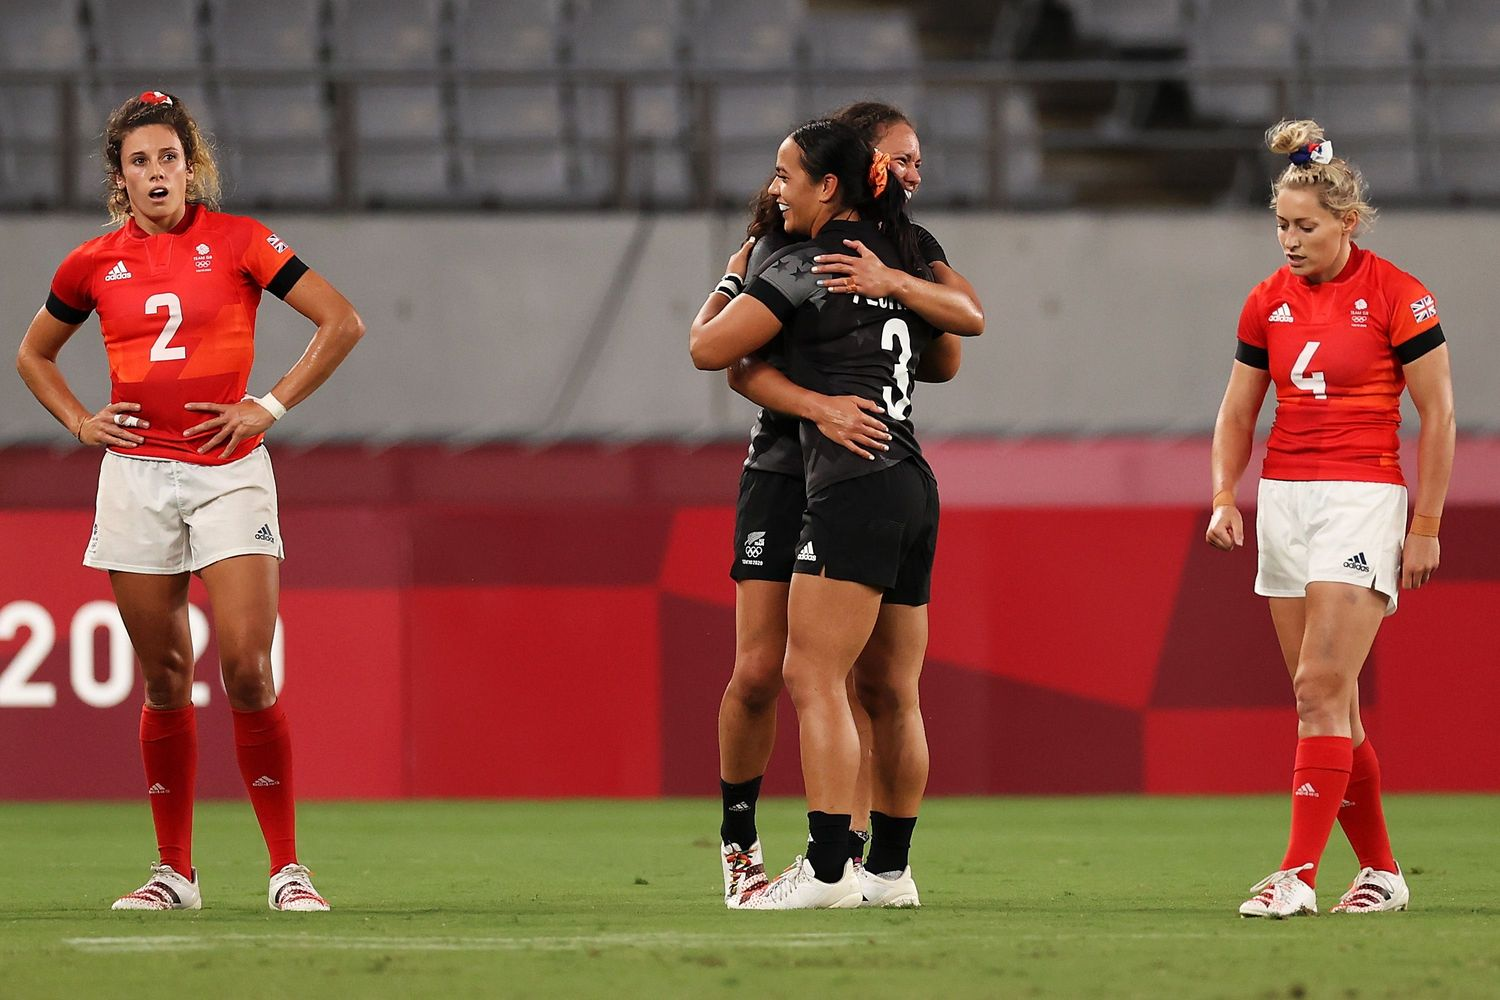 Photo of New Zealand's Ruby Tui and Stacey Fluhler celebrating as Abbie Brown and Natasha Hunt of Team Great Britain look dejected after defeat during the Rugby Sevens on day six of the Tokyo Olympics